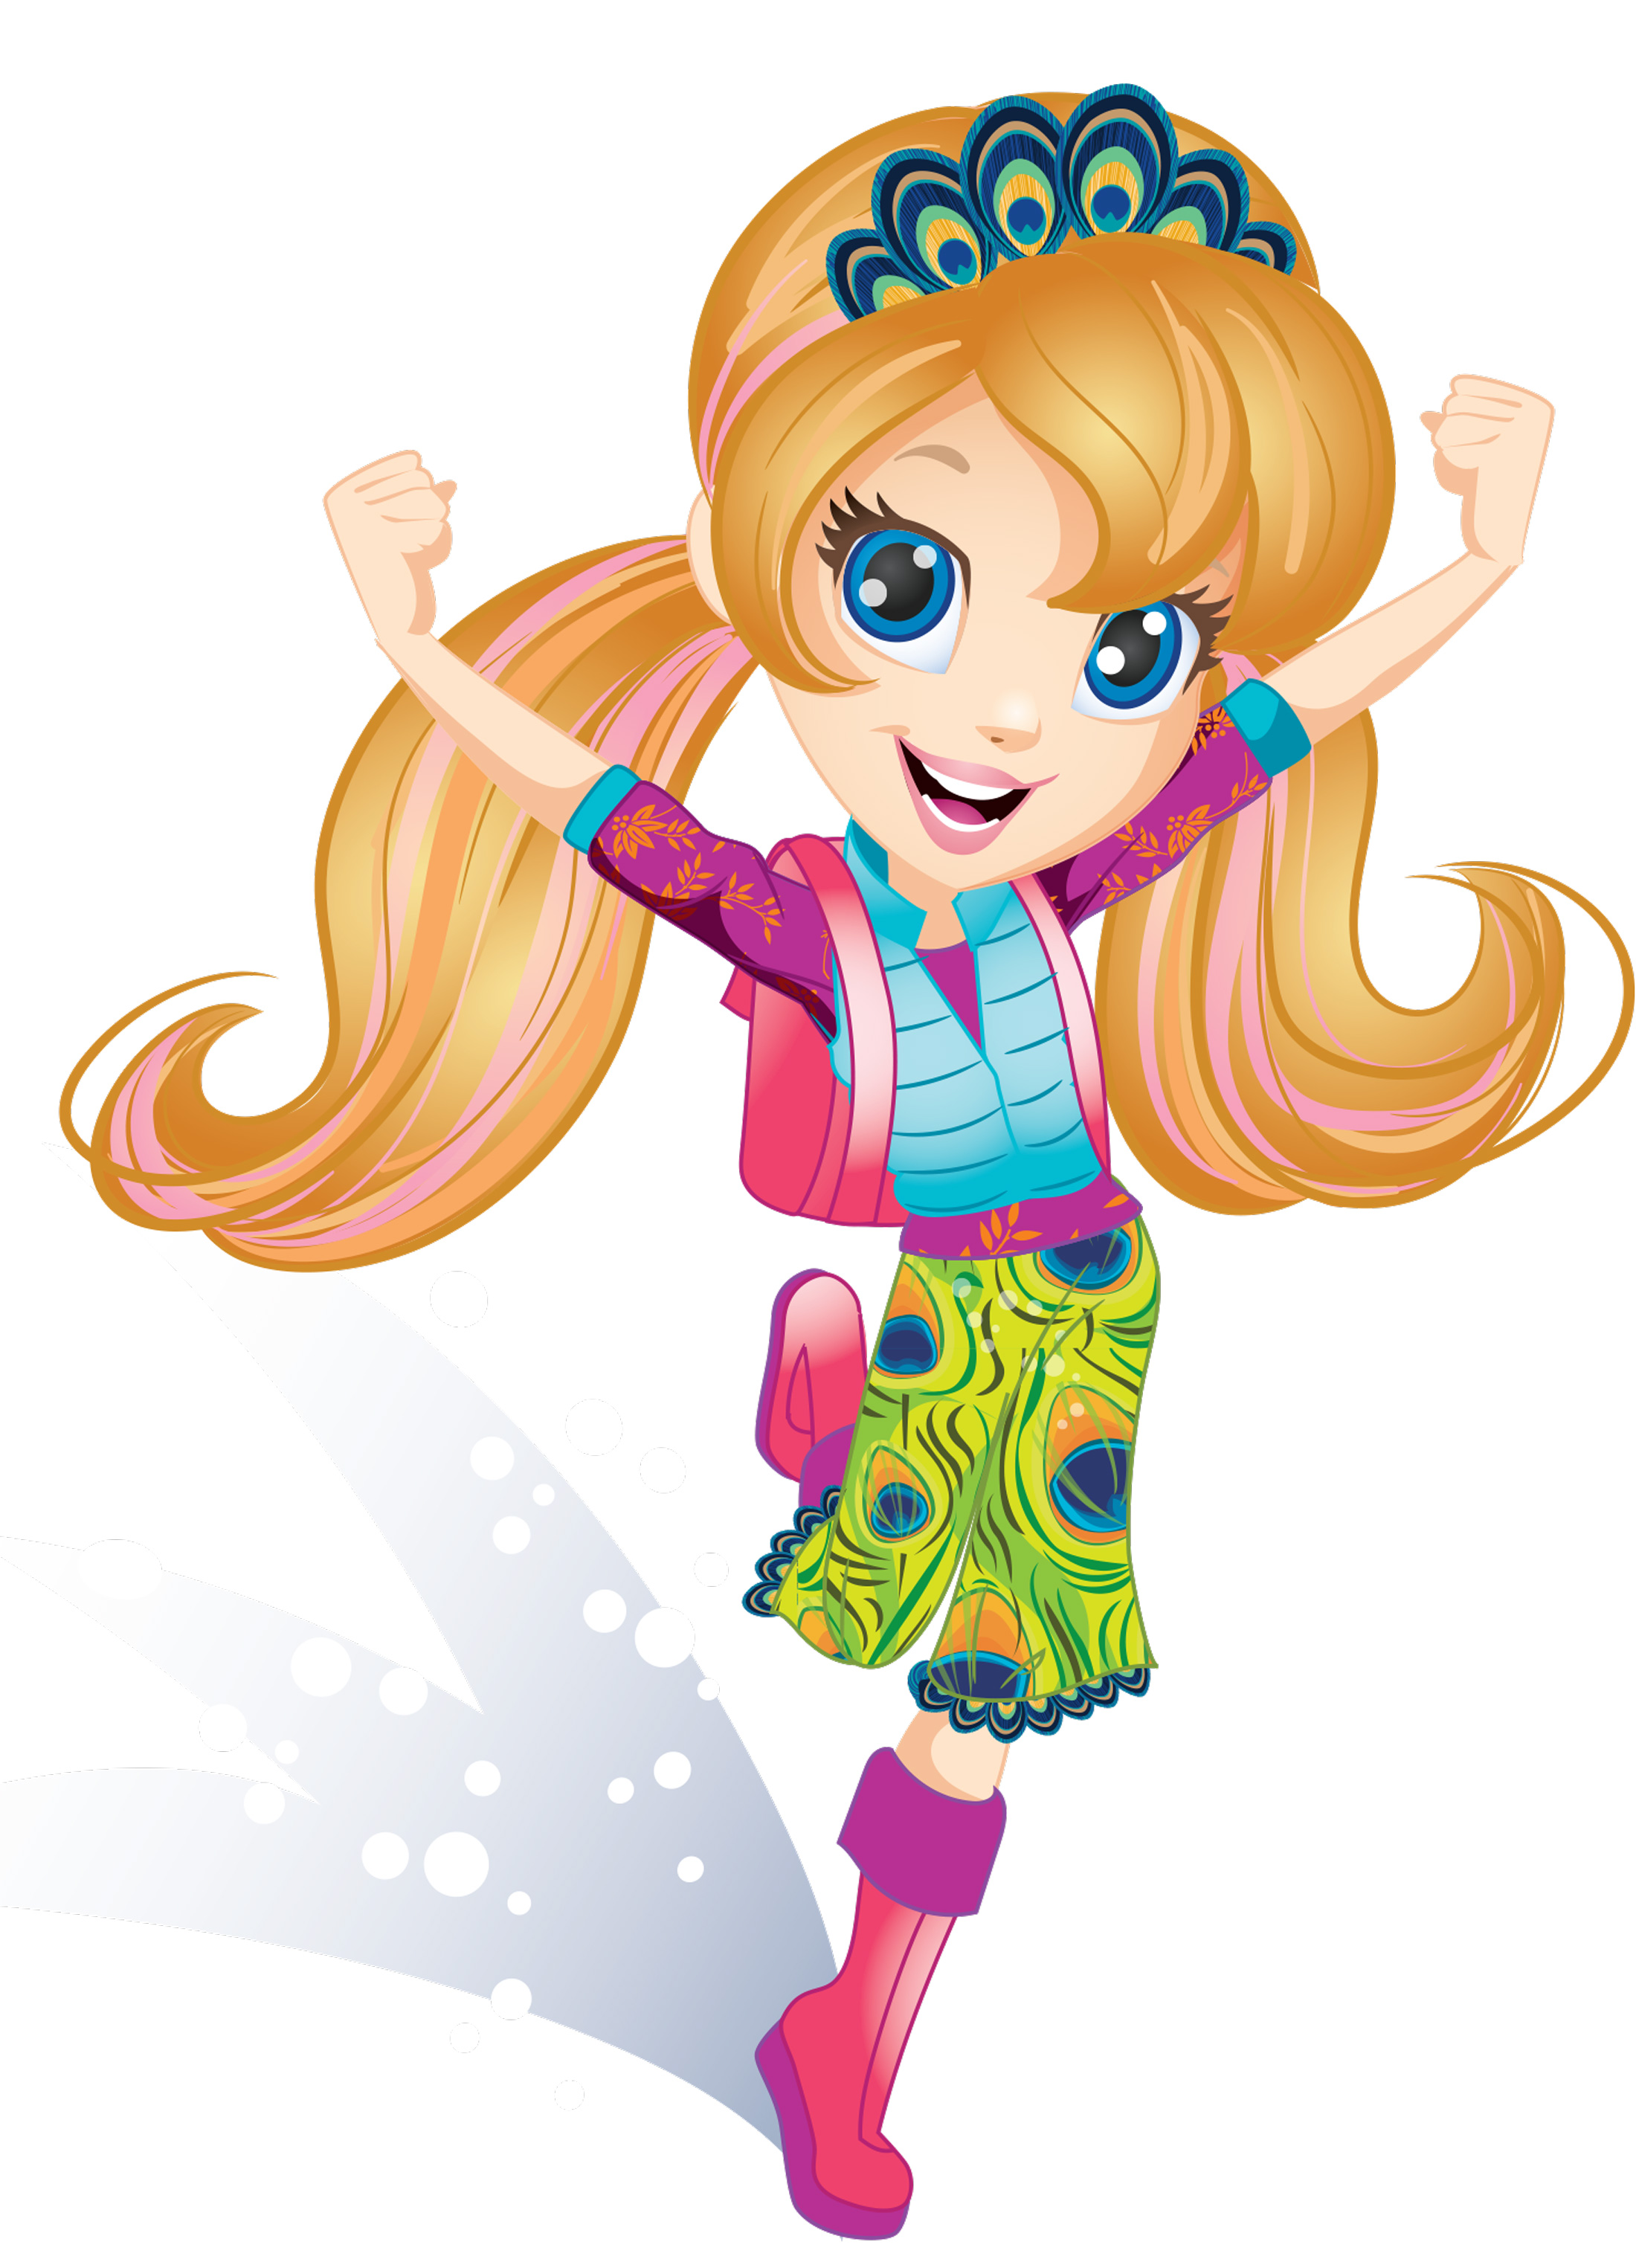 Mona Daly Illustration Polly Pocket Character